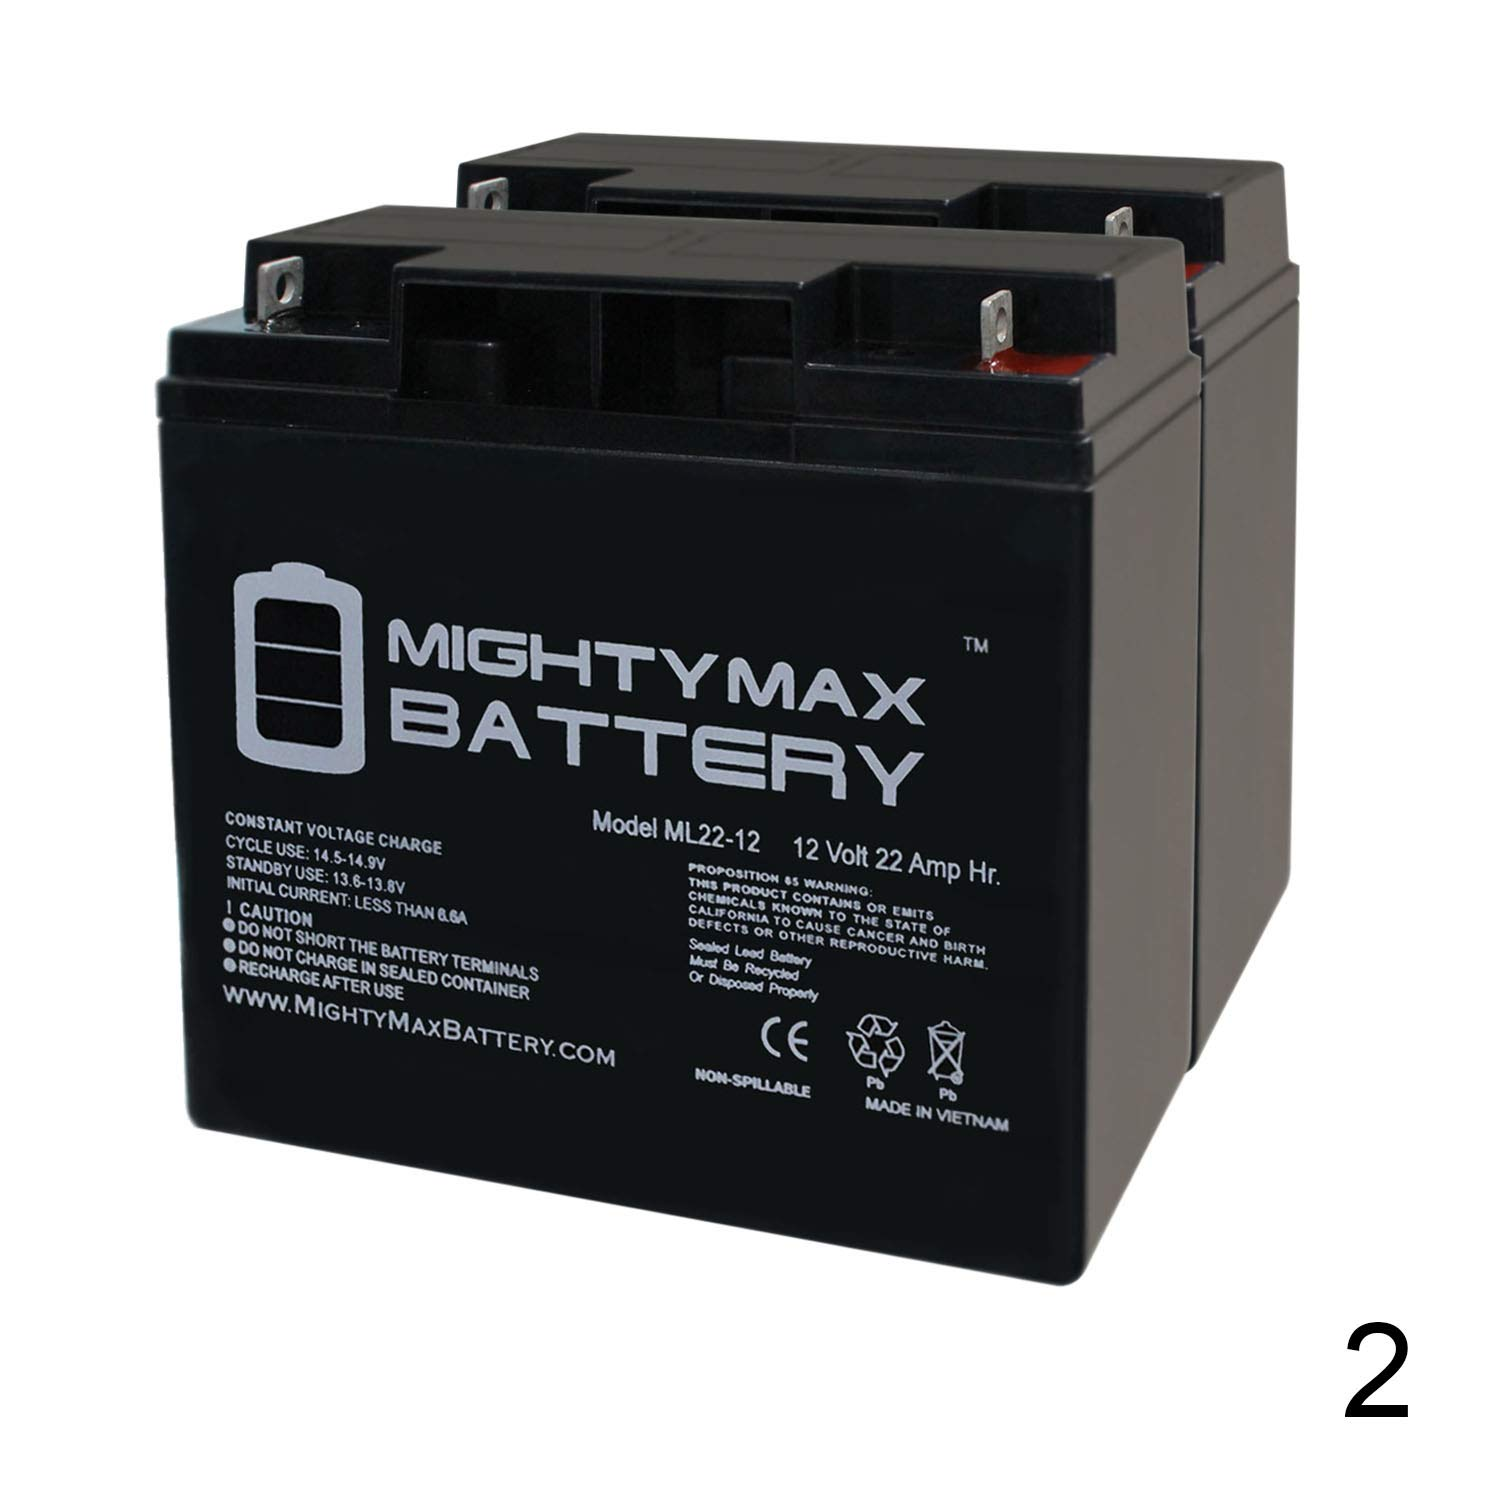 Mighty Max Battery ML22-12 - 12V 22AH Rascal 320, 500 T, 500T Battery - 2 Pack Brand Product by Mighty Max Battery